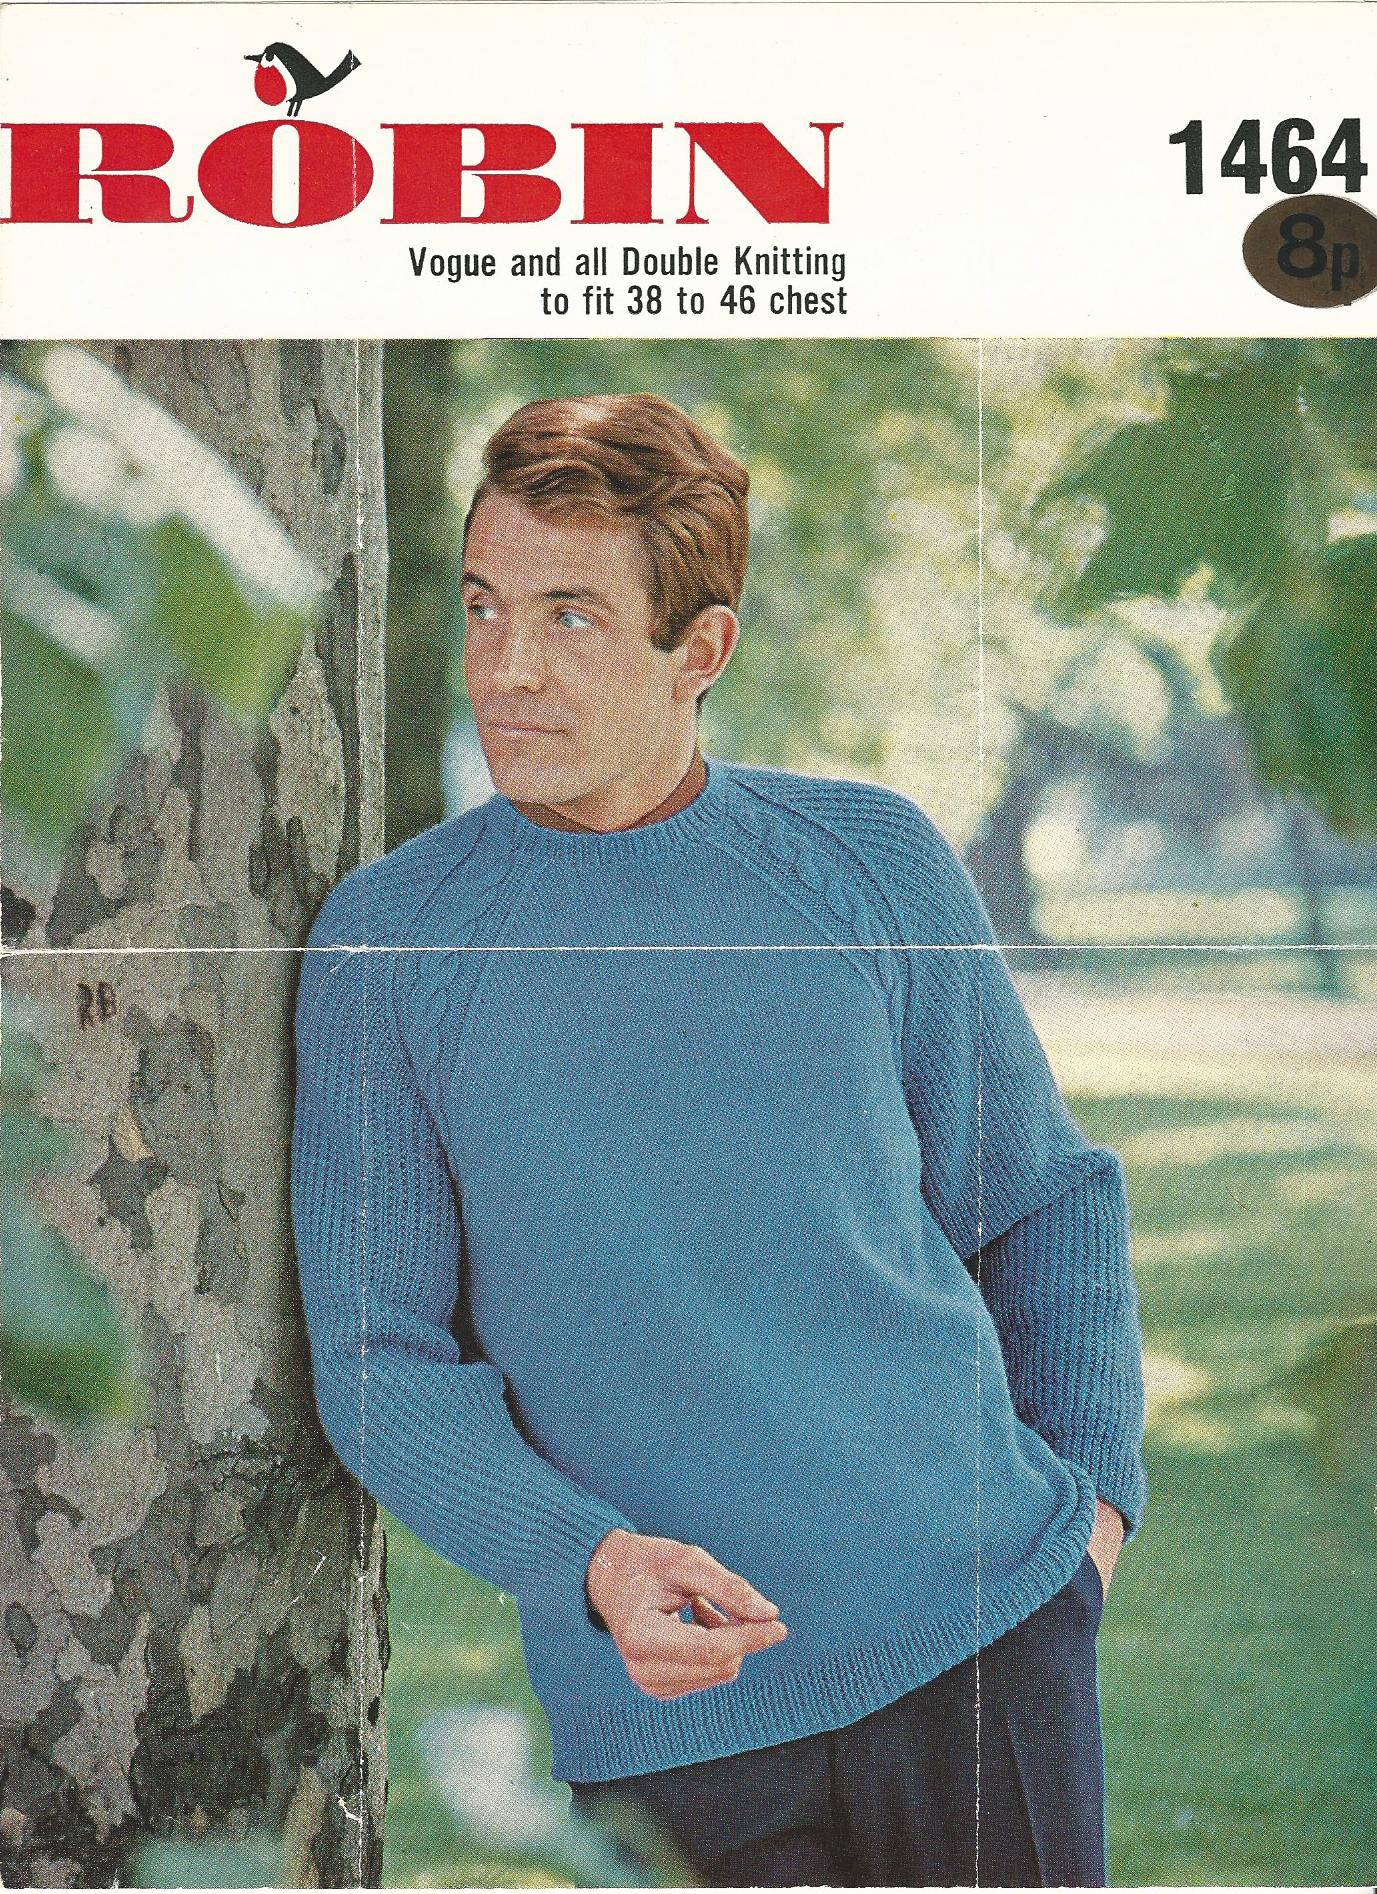 Image for Robin: Vogue and  all Double Knitting to fit 38 to 46 chest: No. 1464